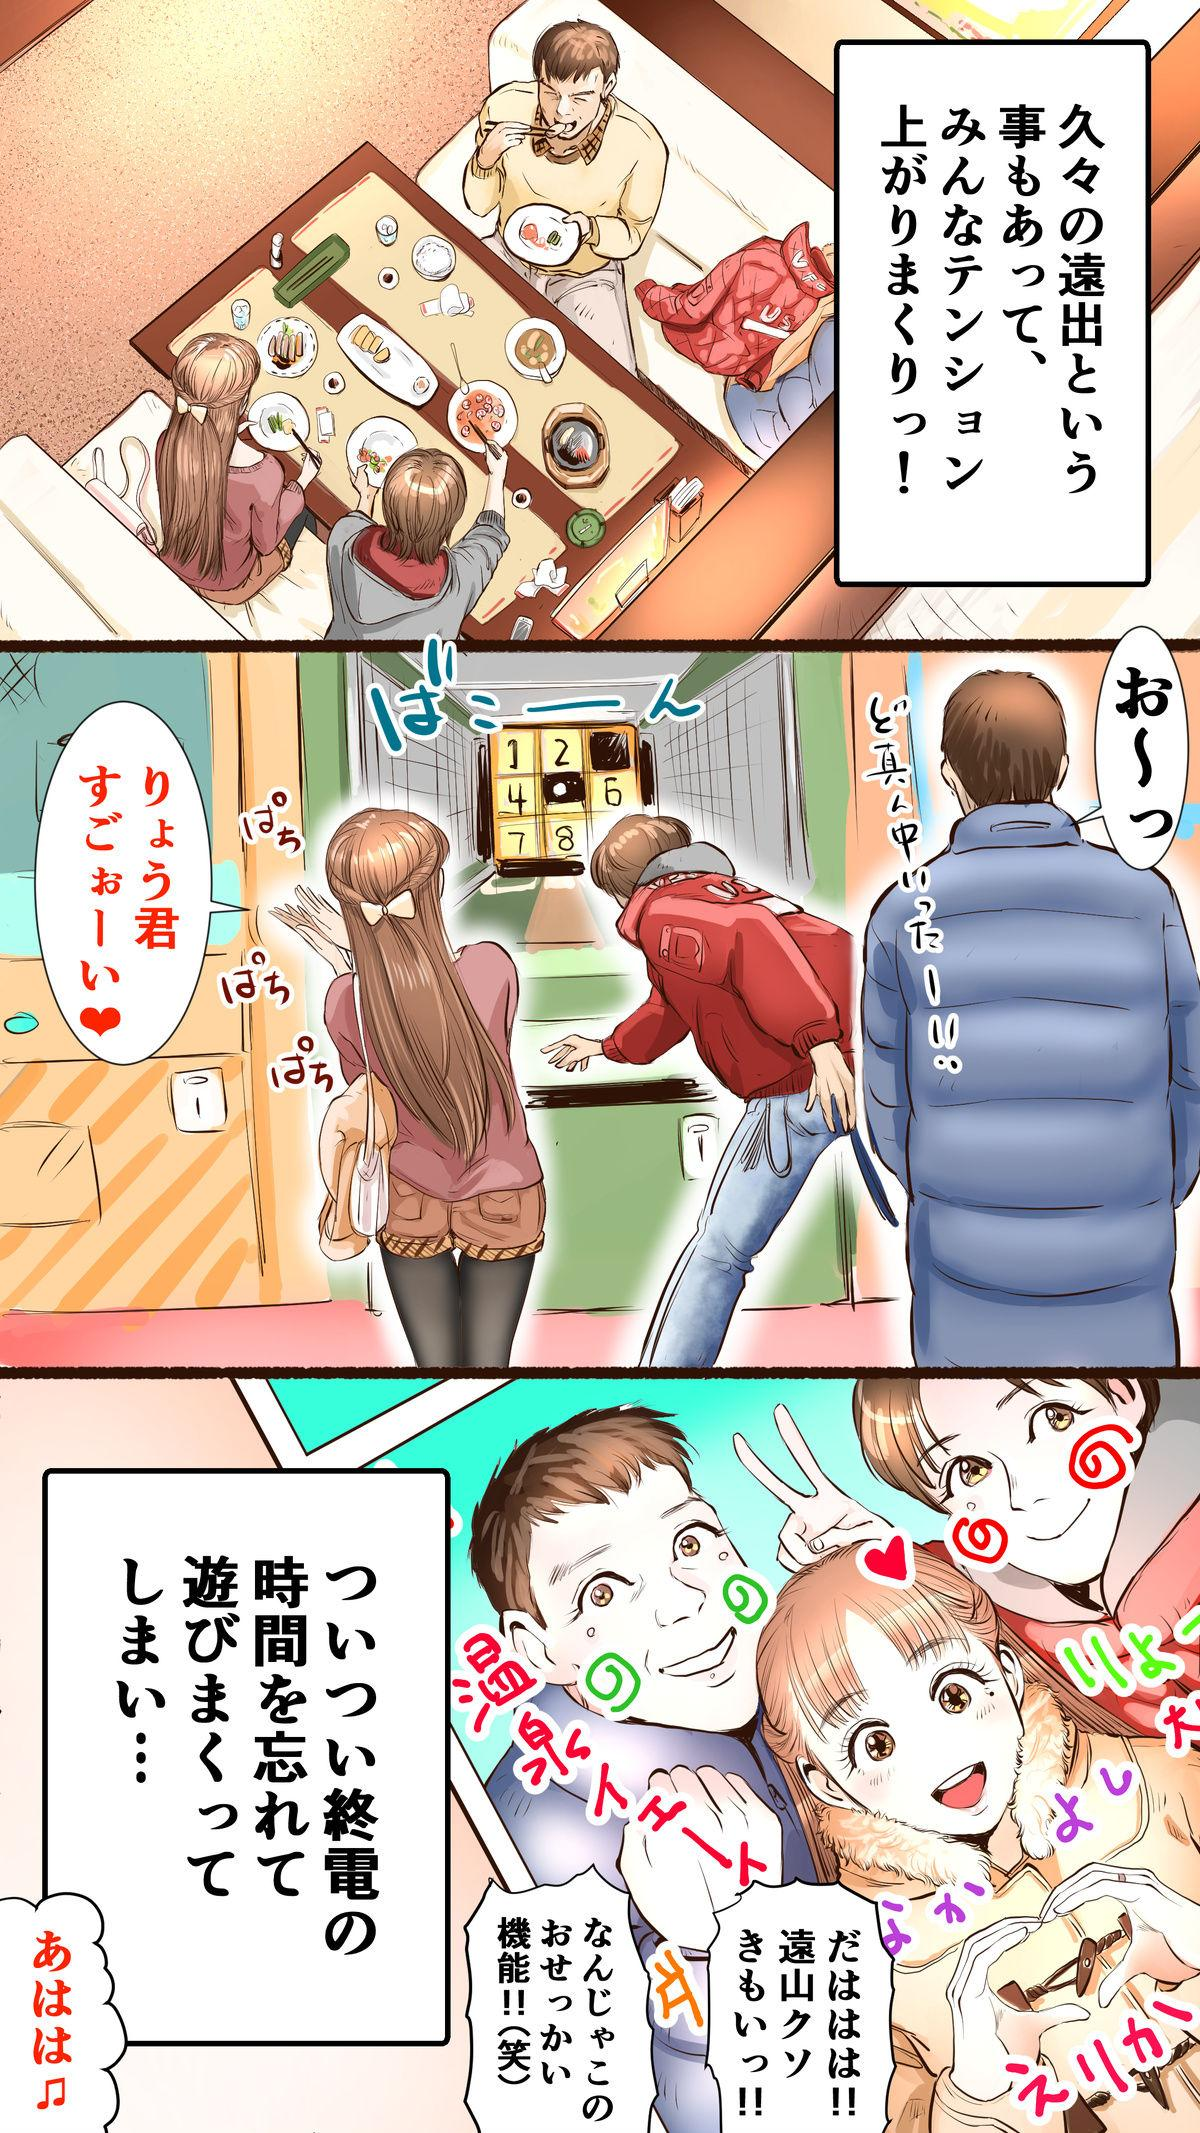 Story of Hot Spring Hotel 1